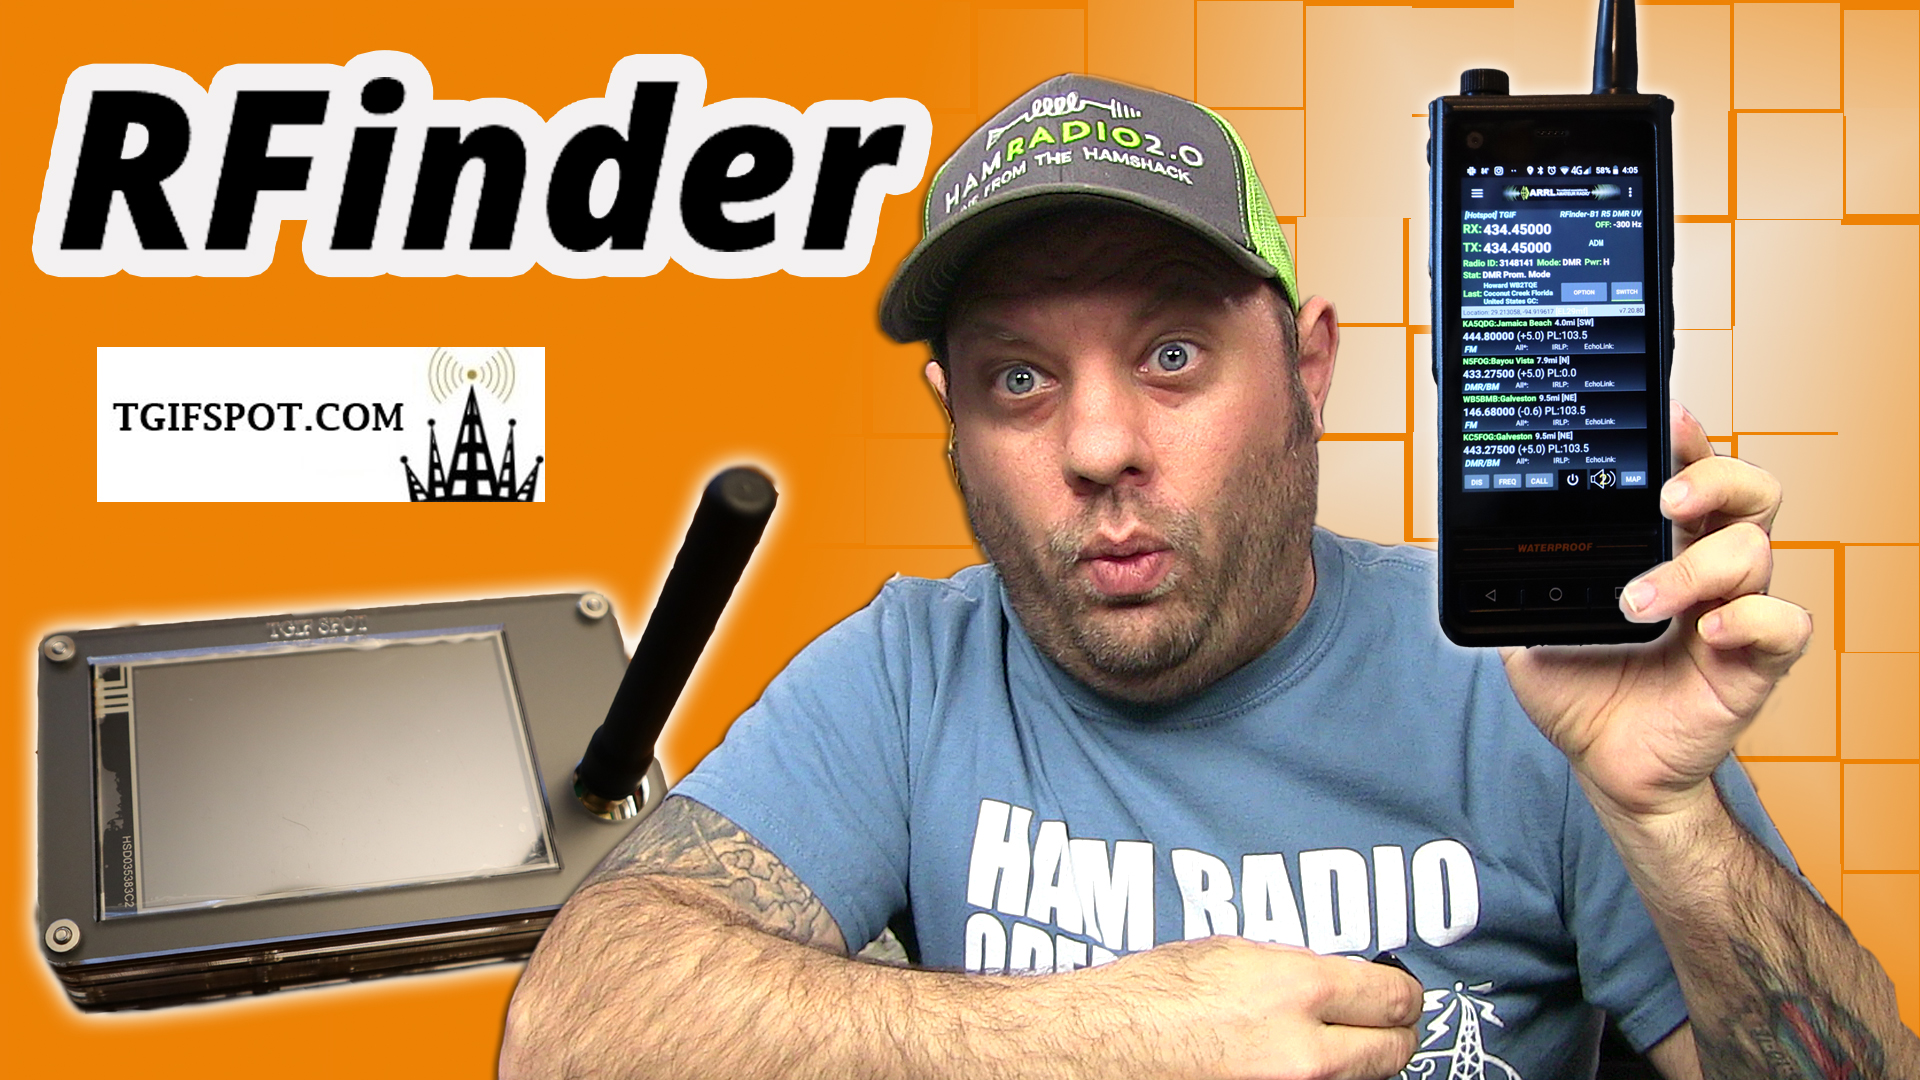 Episode 388: RFinder B1 Android Radio with a TGIF Hotspot – DMR Operating!